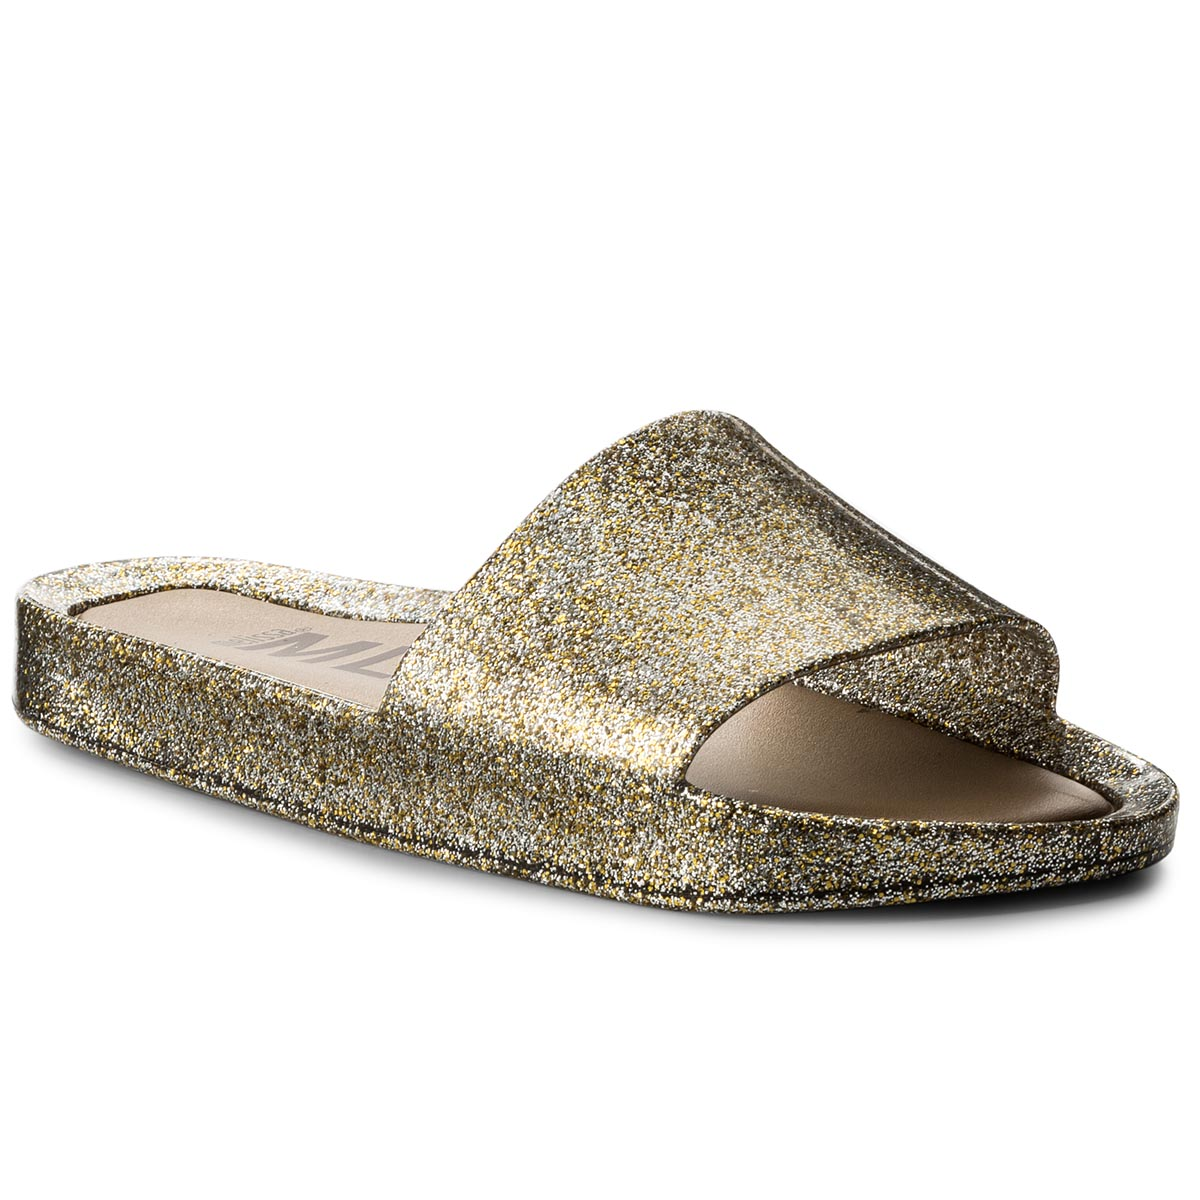 Klapki MELISSA - Beach Slide Shine Ad 32291 Mixed Golden Glitter 03771